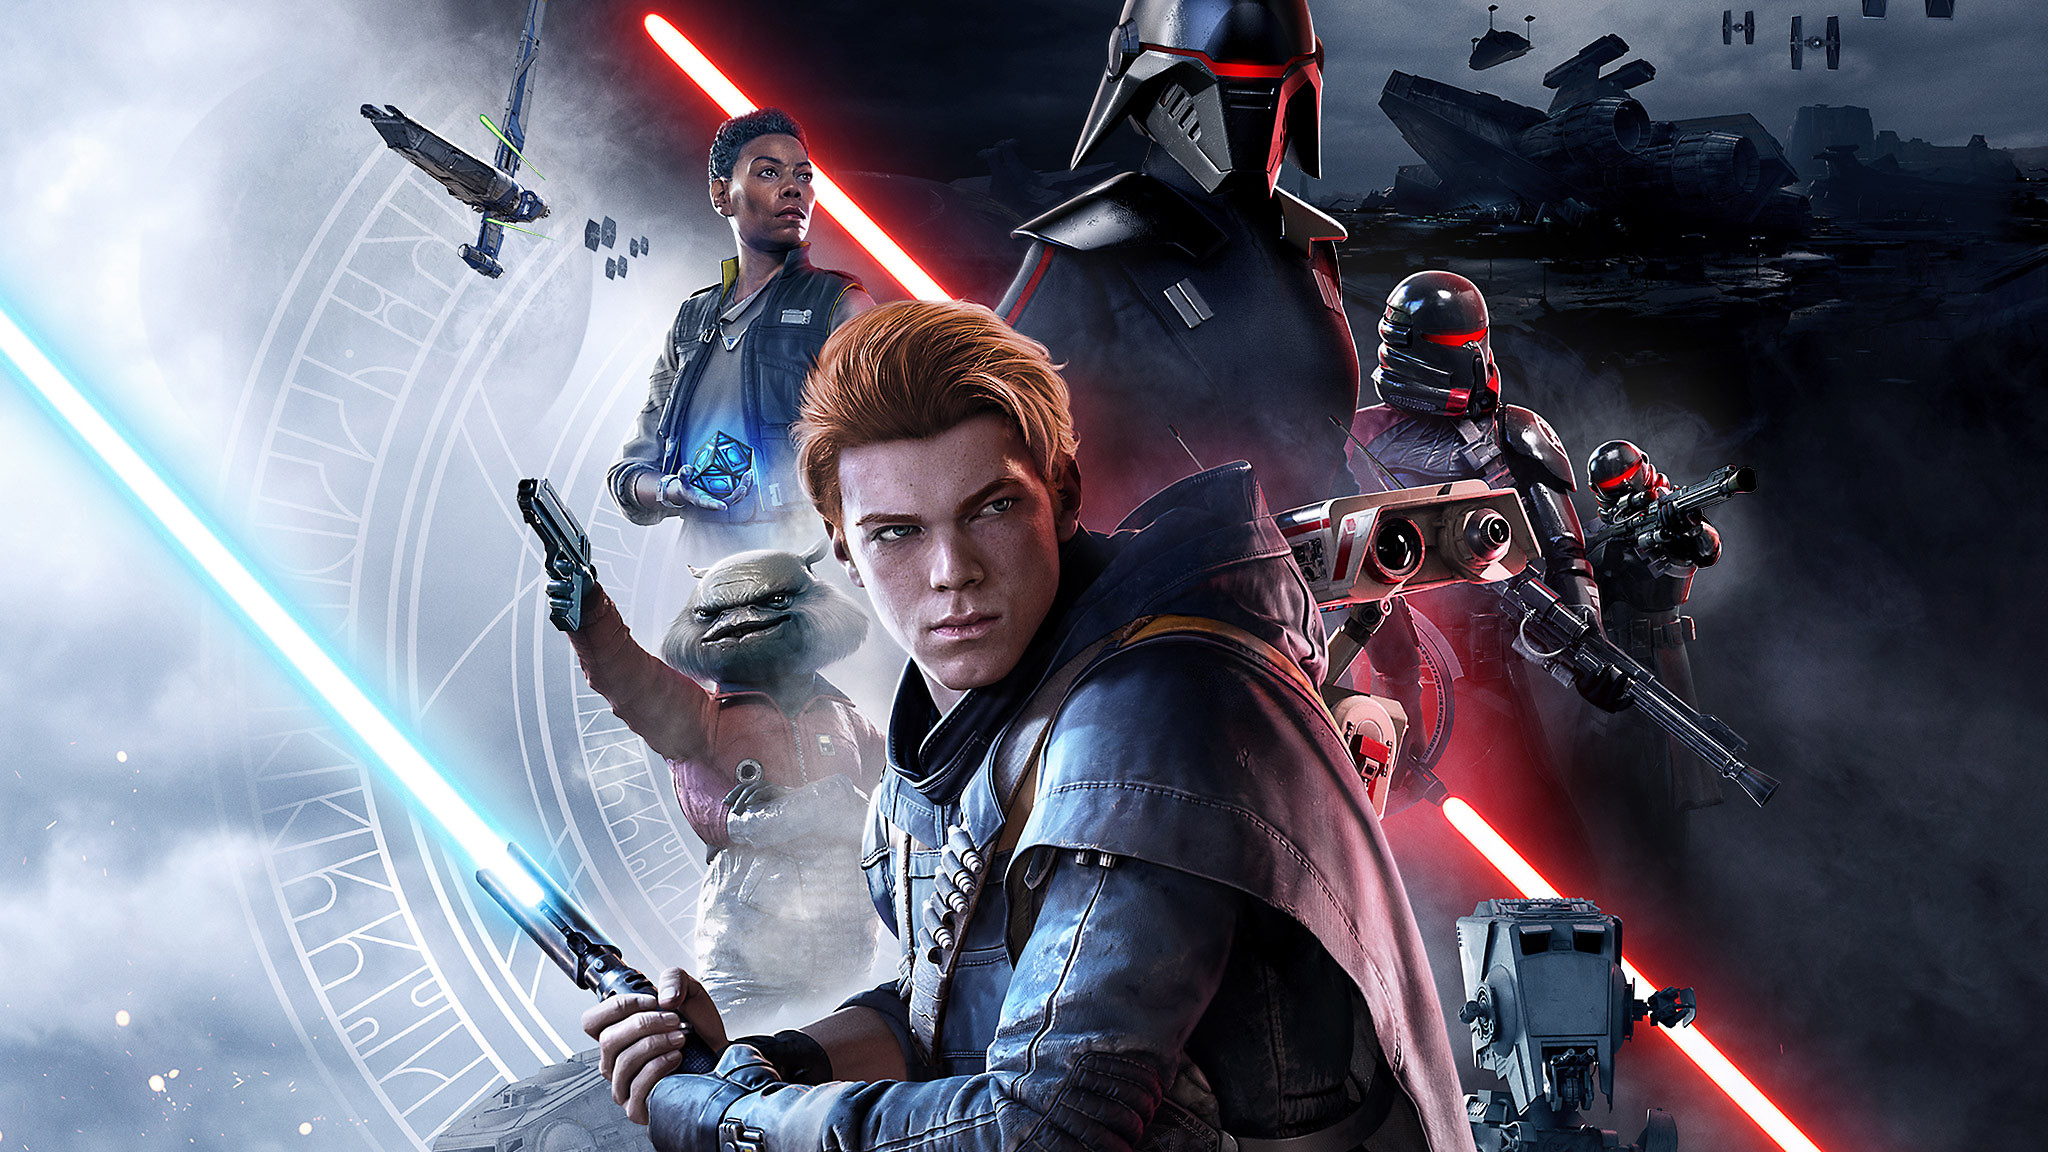 2019 Star Wars Jedi Fallen Order Hd Games 4k Wallpapers Images Backgrounds Photos And Pictures